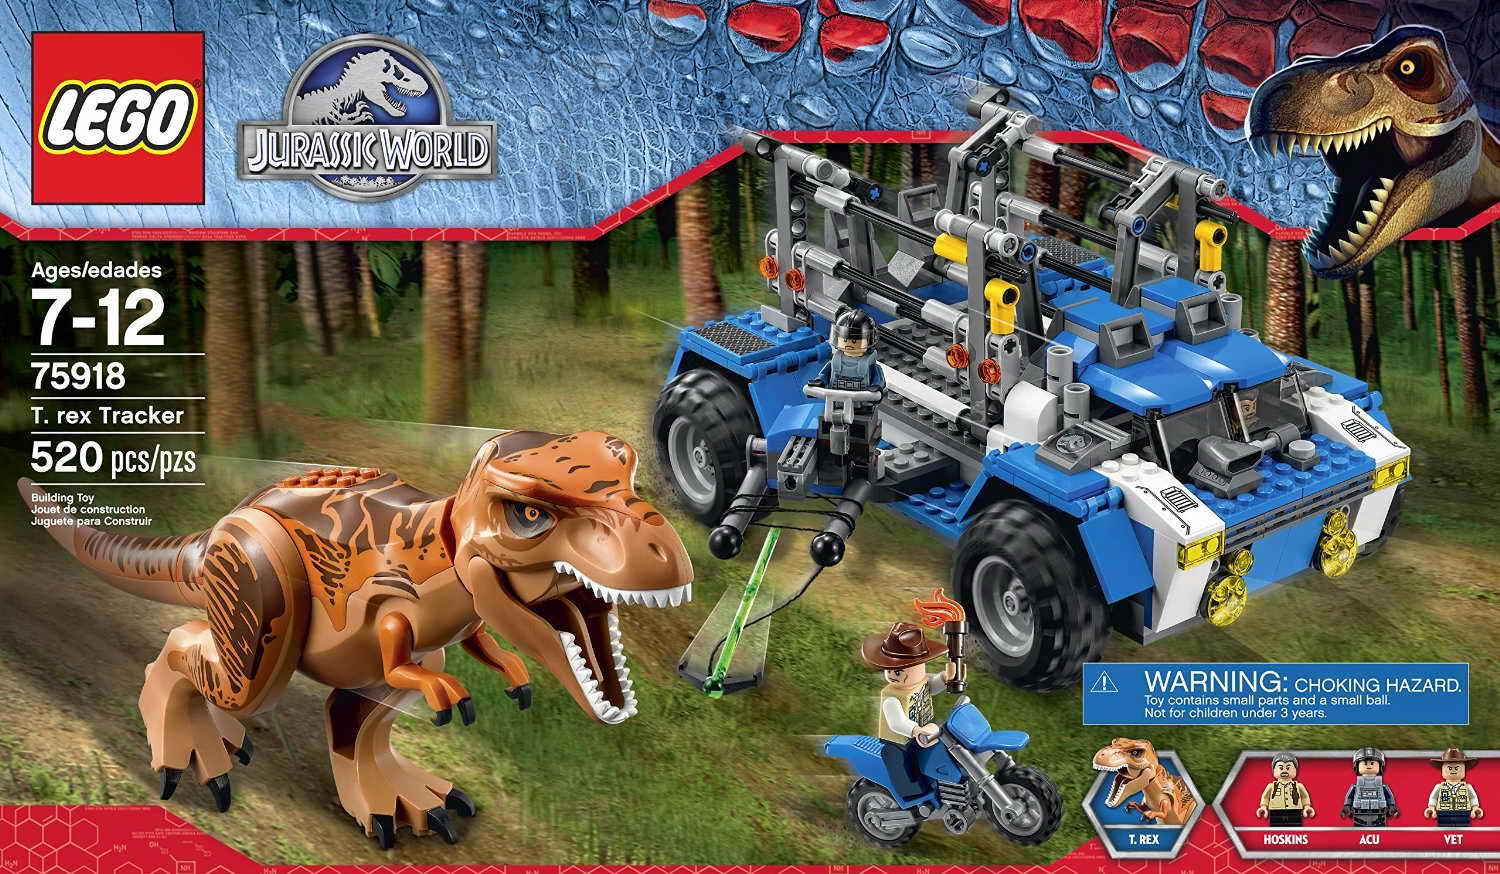 jurassic world adventskalender